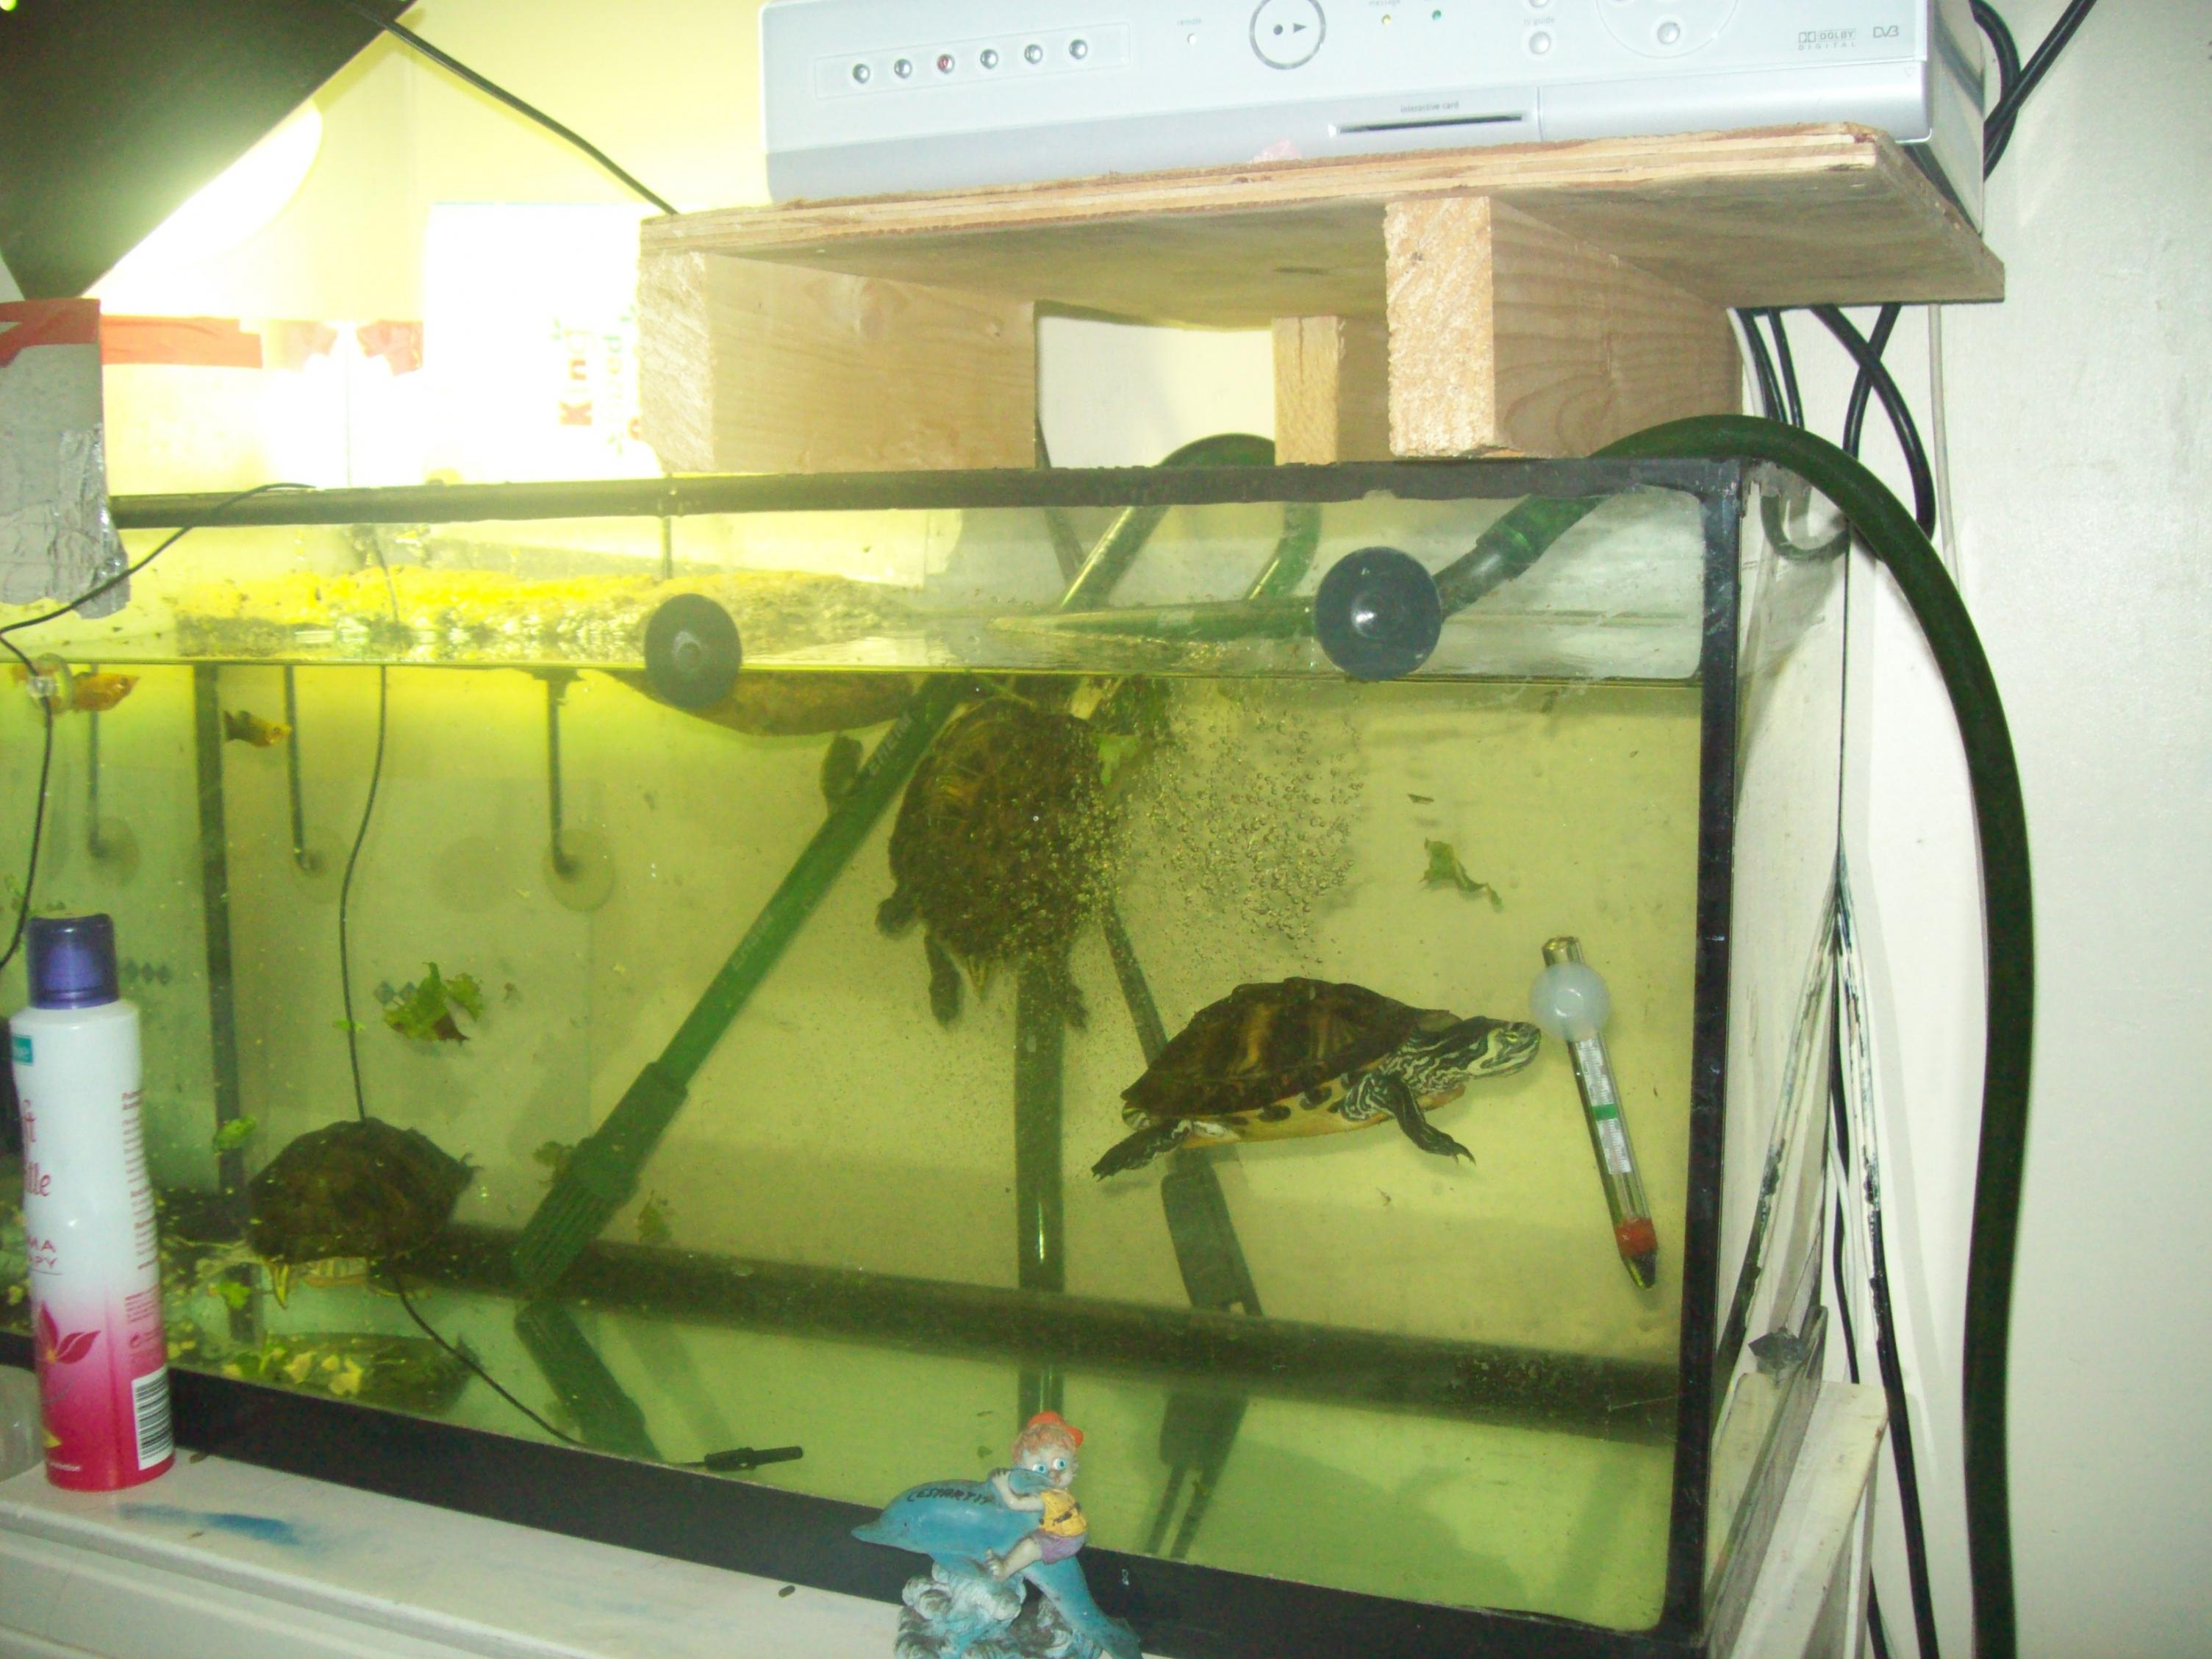 NW England Terrapins For Sale With Equiptment - Reptile Forums